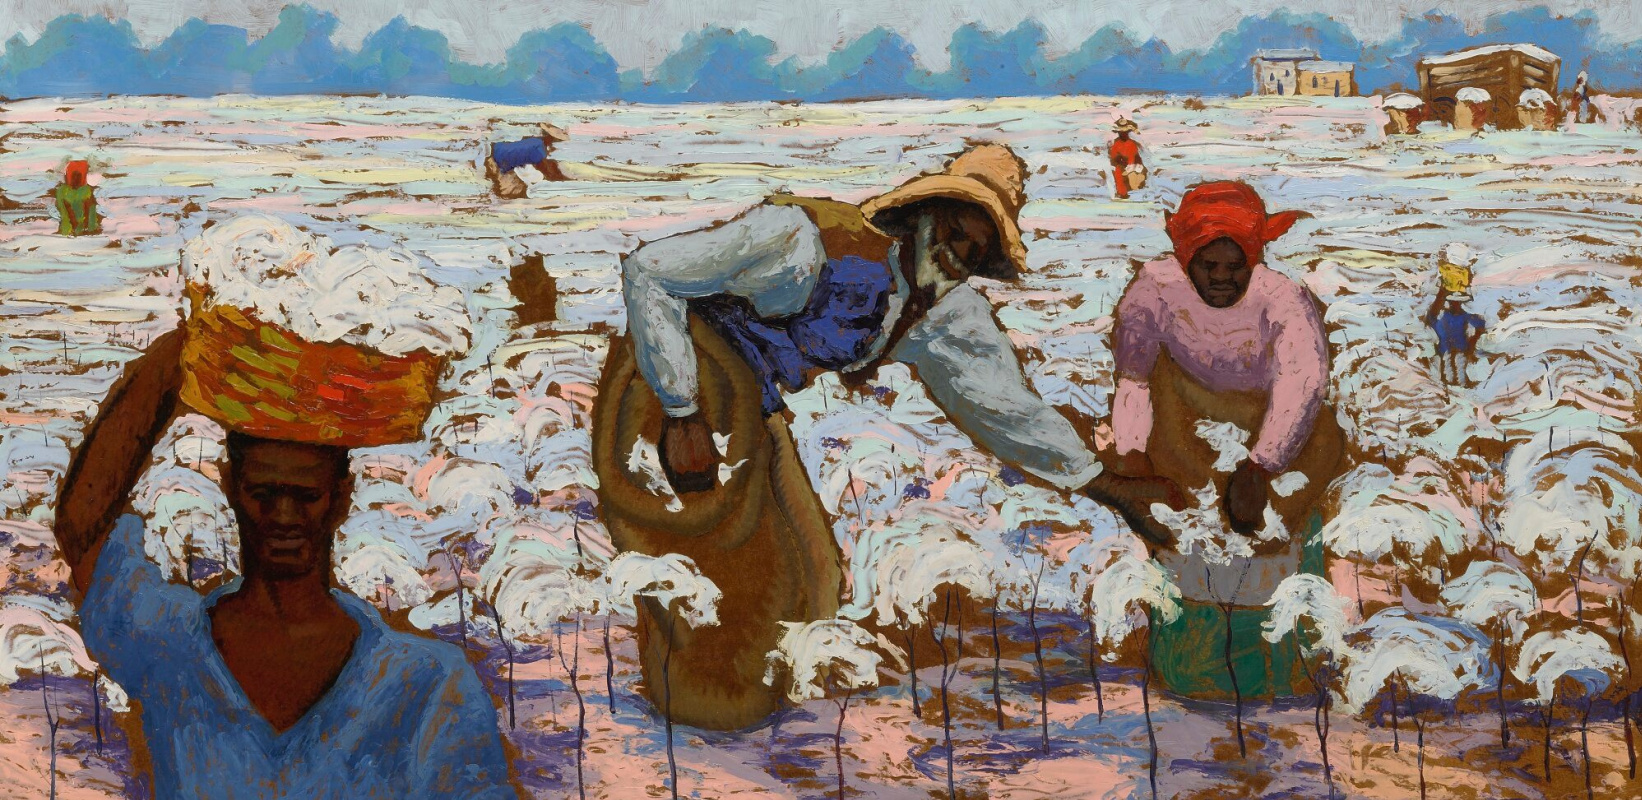 Hale Aspasio Woodruff. Picking cotton